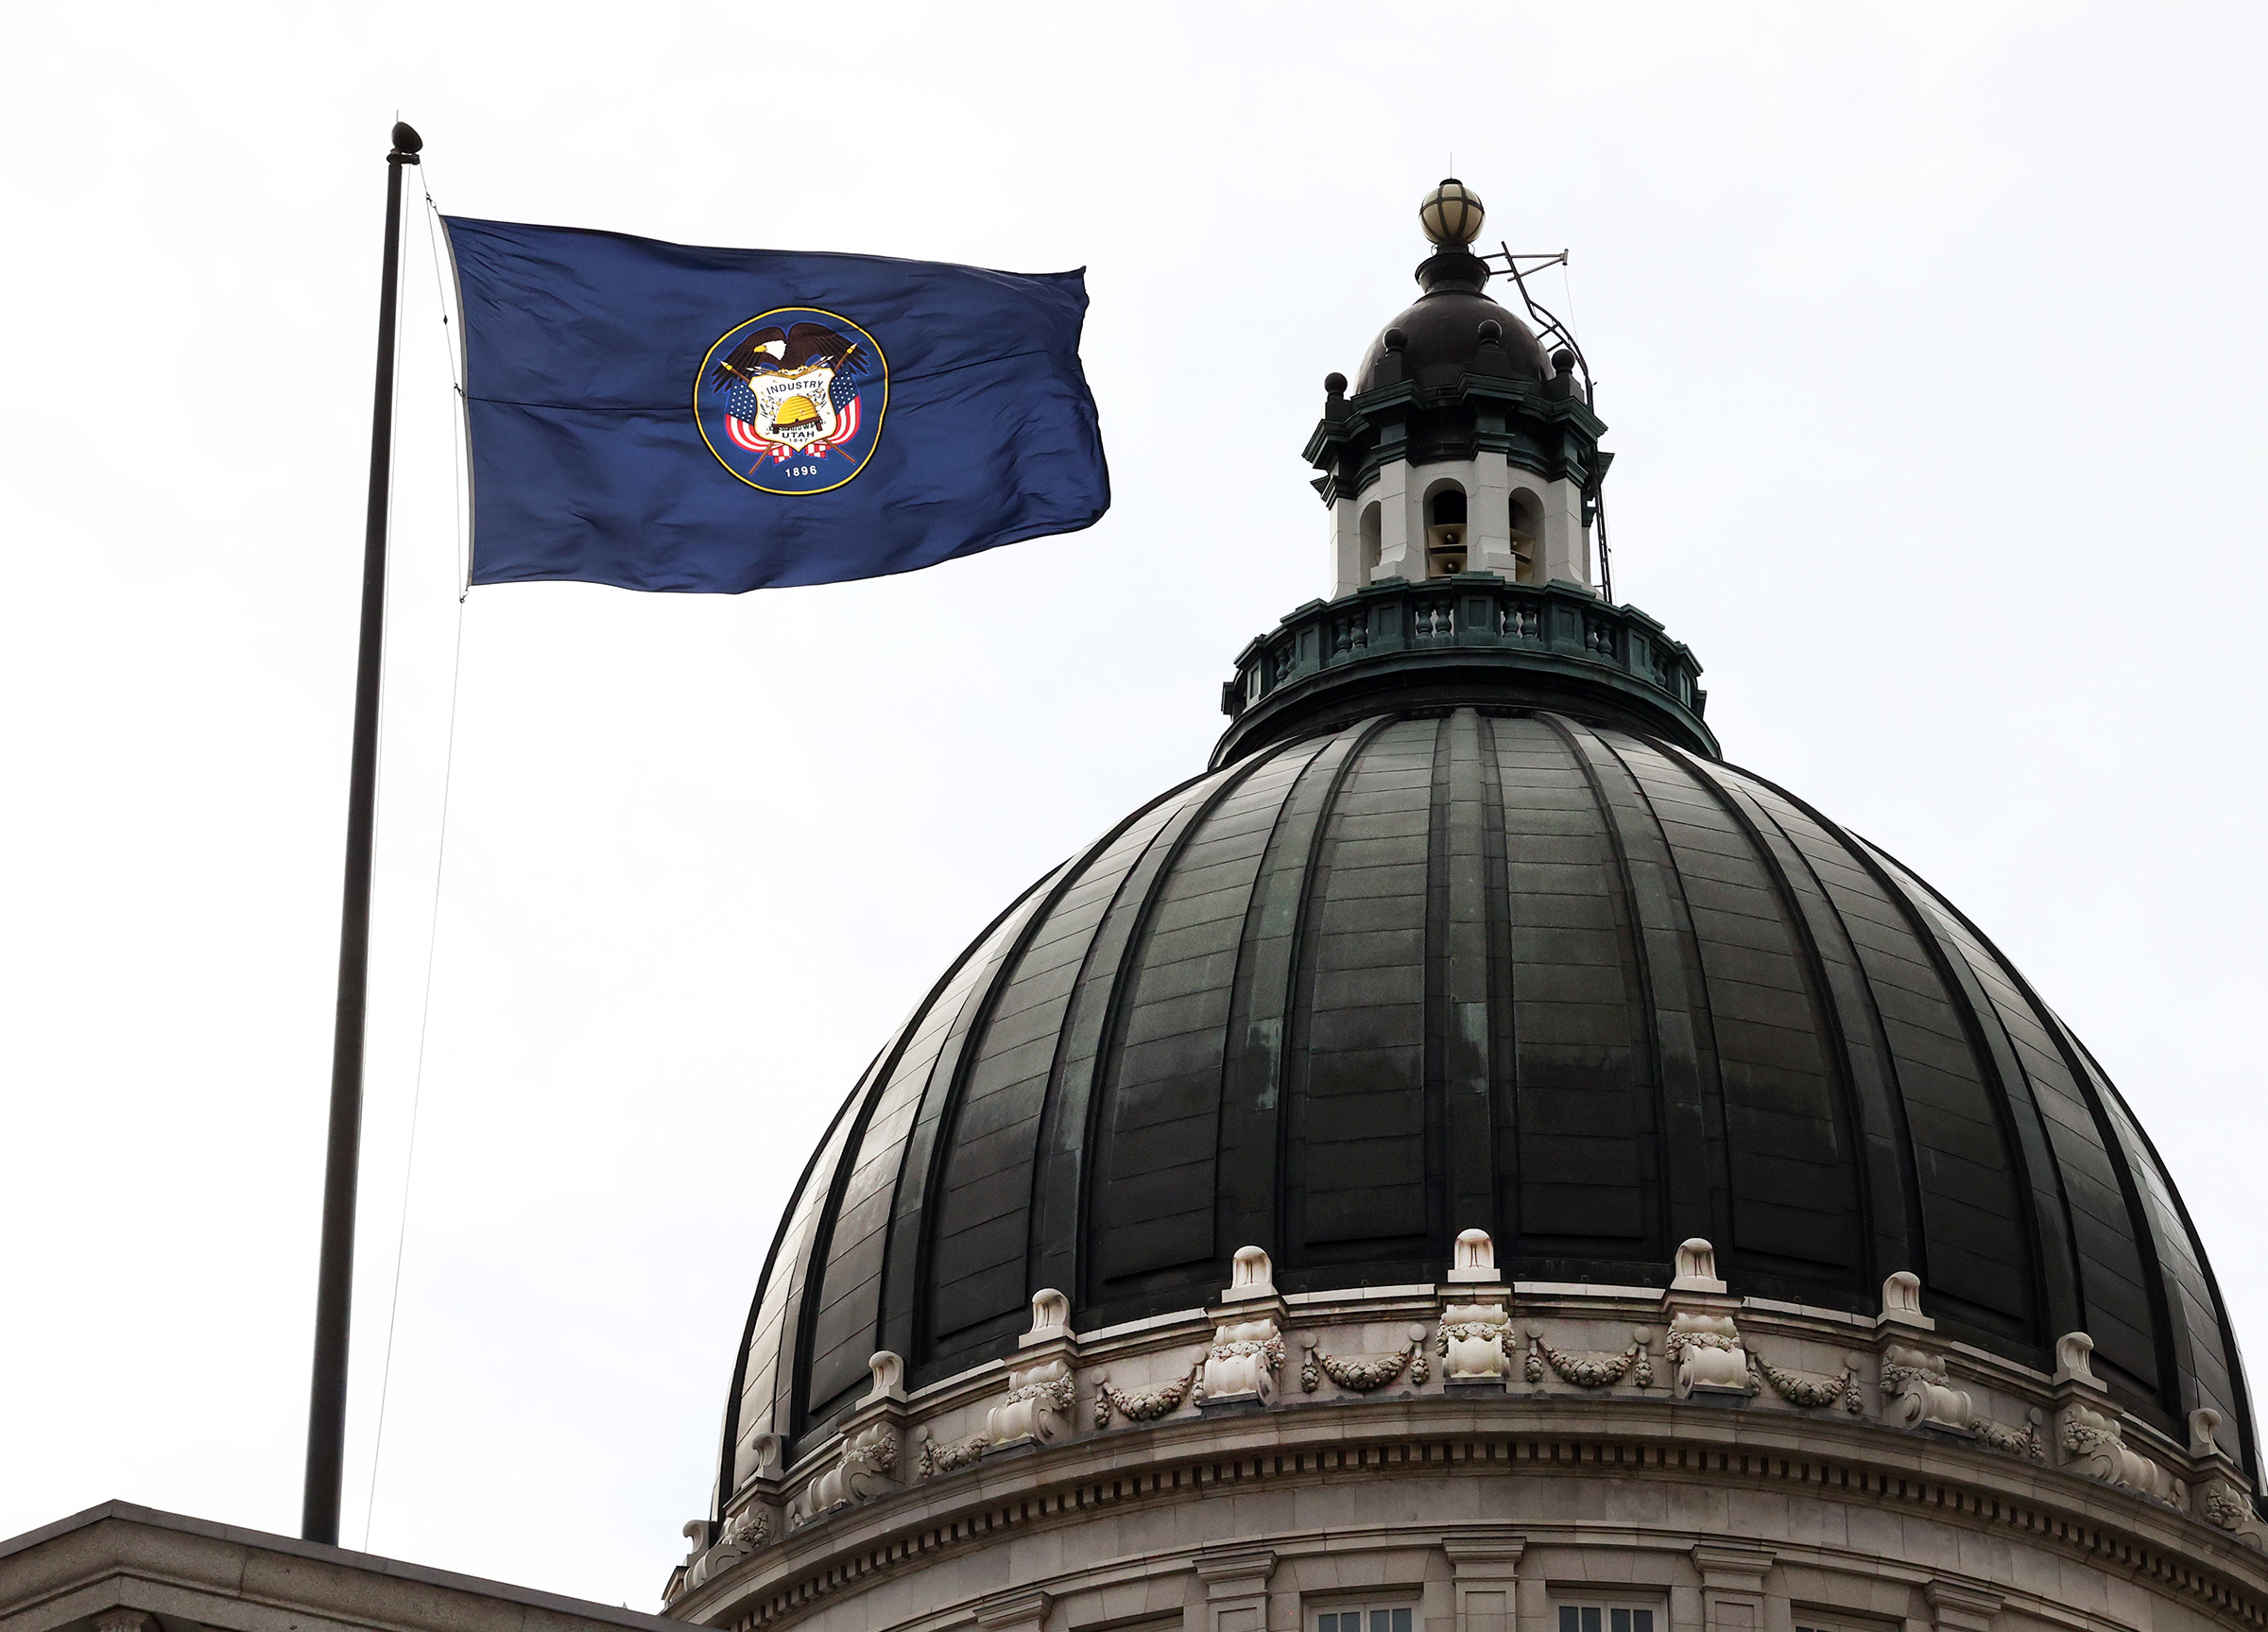 The Utah flag flies over the Capitol in Salt Lake City on Friday, Jan. 22, 2021. The Utah flag flies over the Capitol in Salt Lake City on Friday, Jan. 22, 2021. Sen. Daniel McCay, R-Riverton, is proposing that the current flag be redesigned.